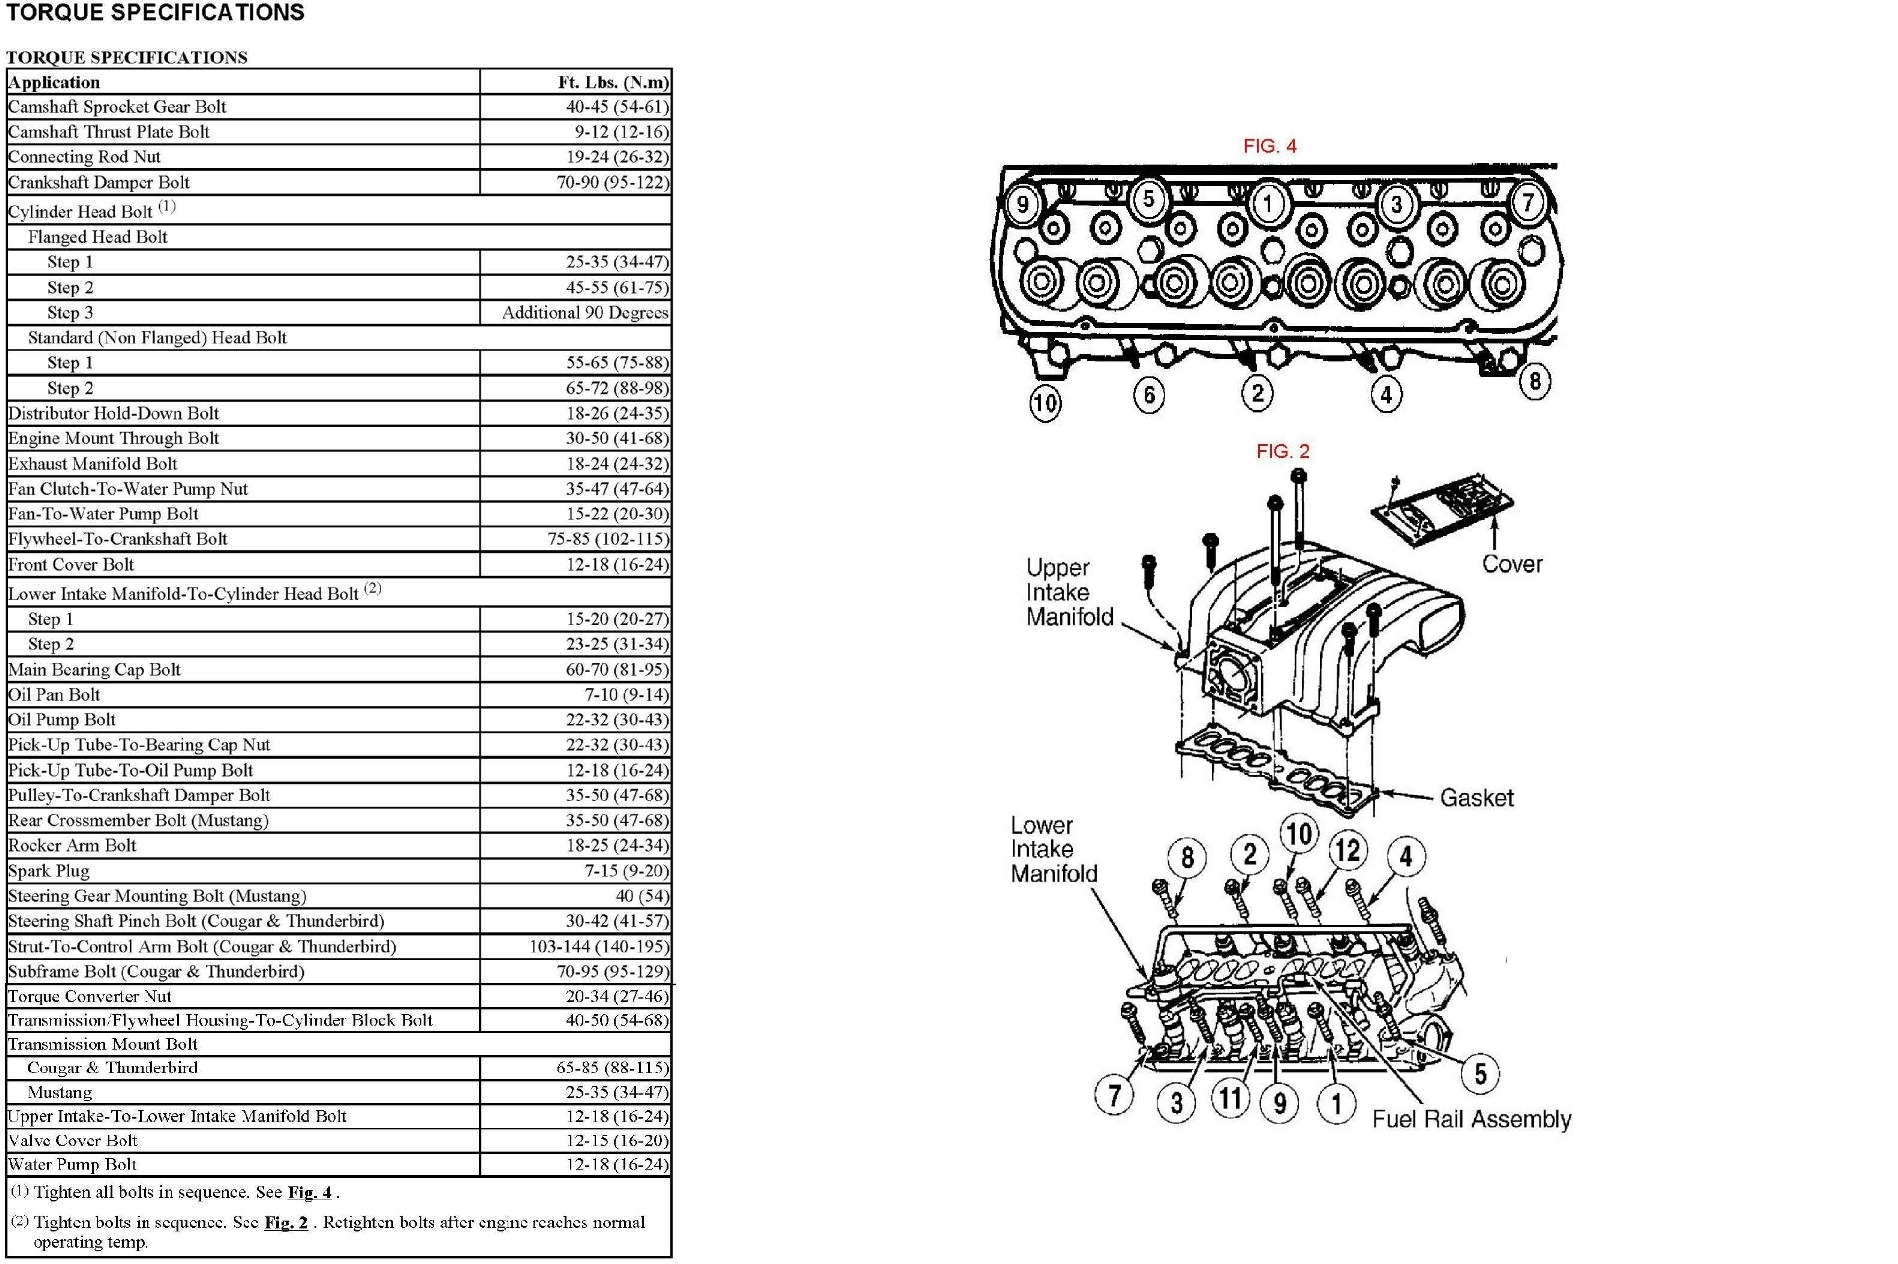 91 Ford Ranger Engine Diagram Wiring Library 1999 Tj Everything You Need To Know About 19791993 Foxbody Mustangs Mustang 50l Torque Ratings